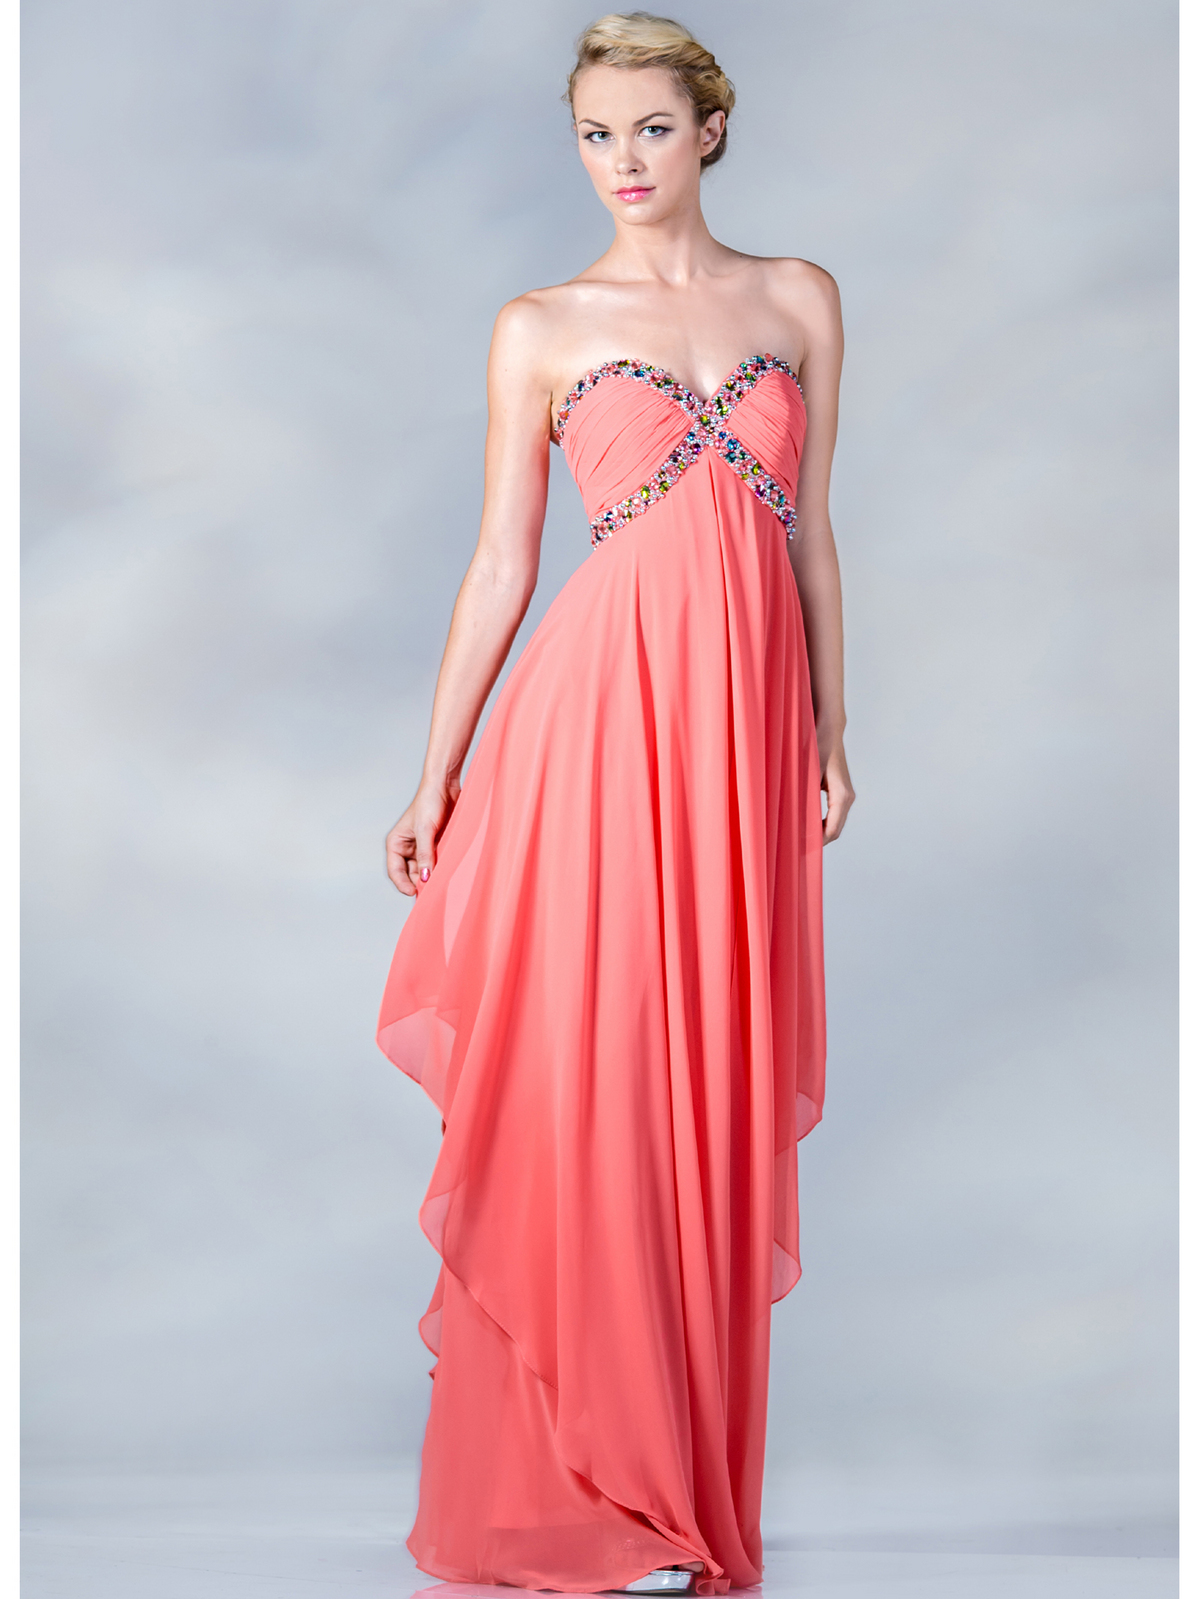 Strapless Beaded Prom Dress | Sung Boutique L.A.